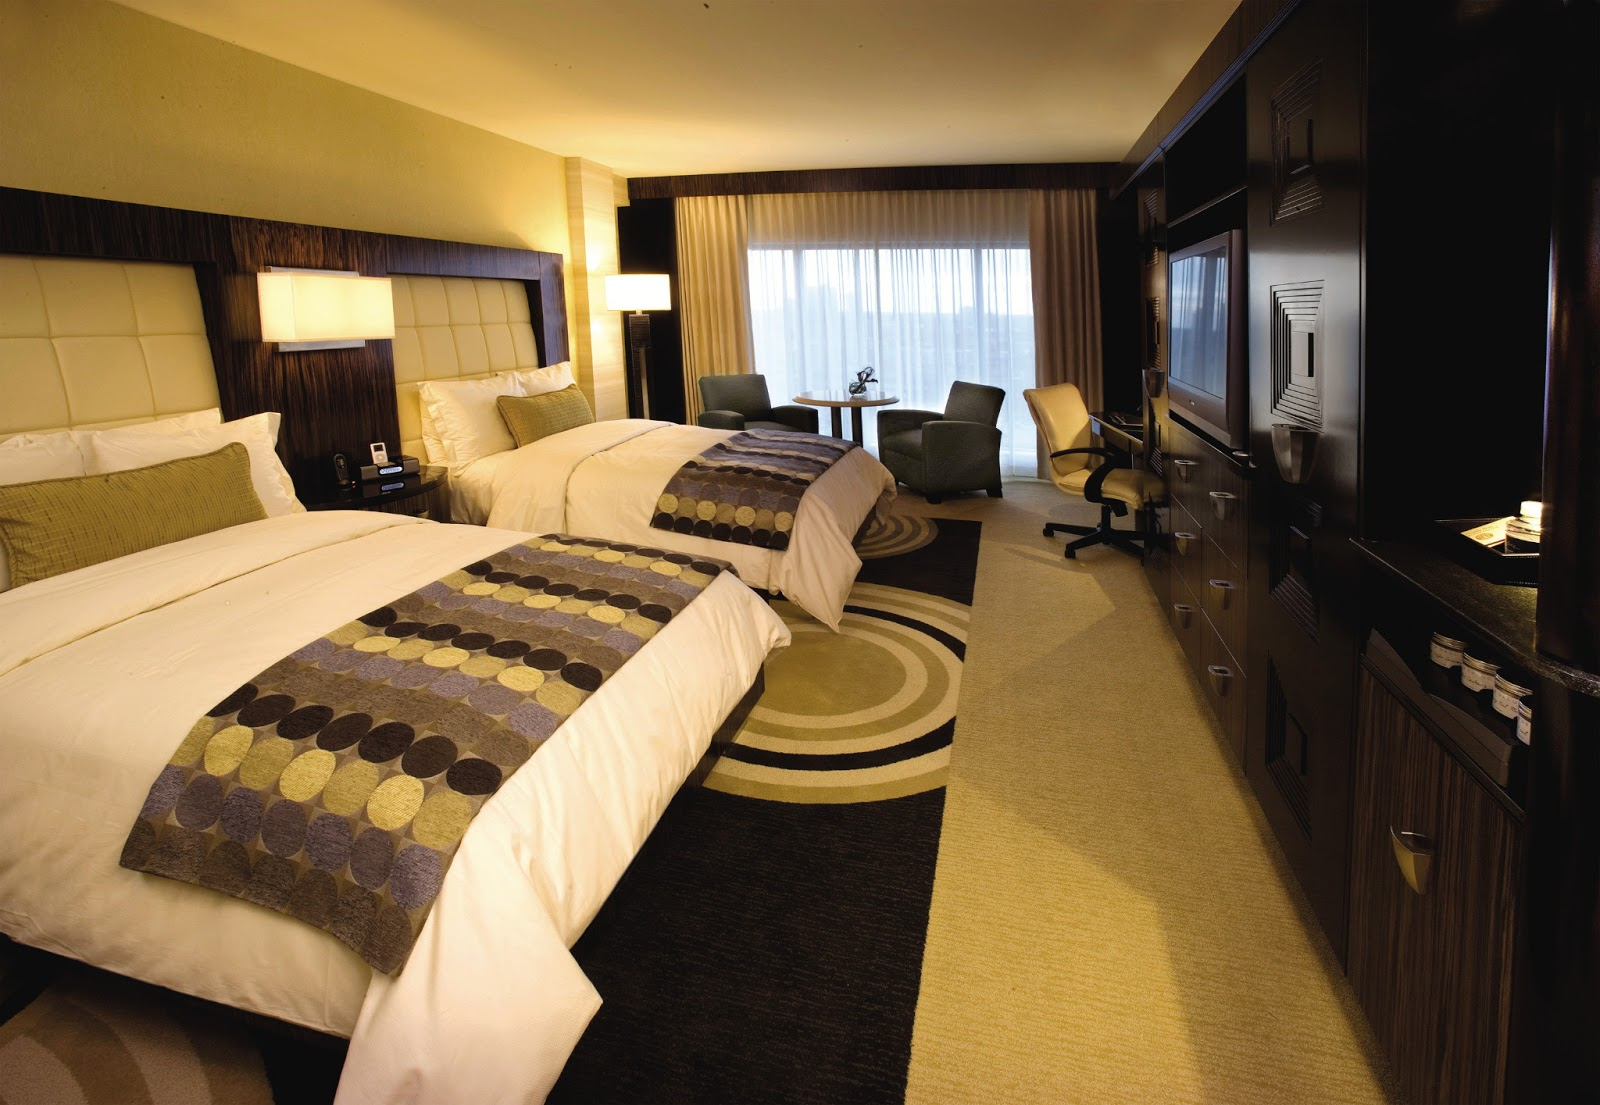 star hotel room interior.jpg